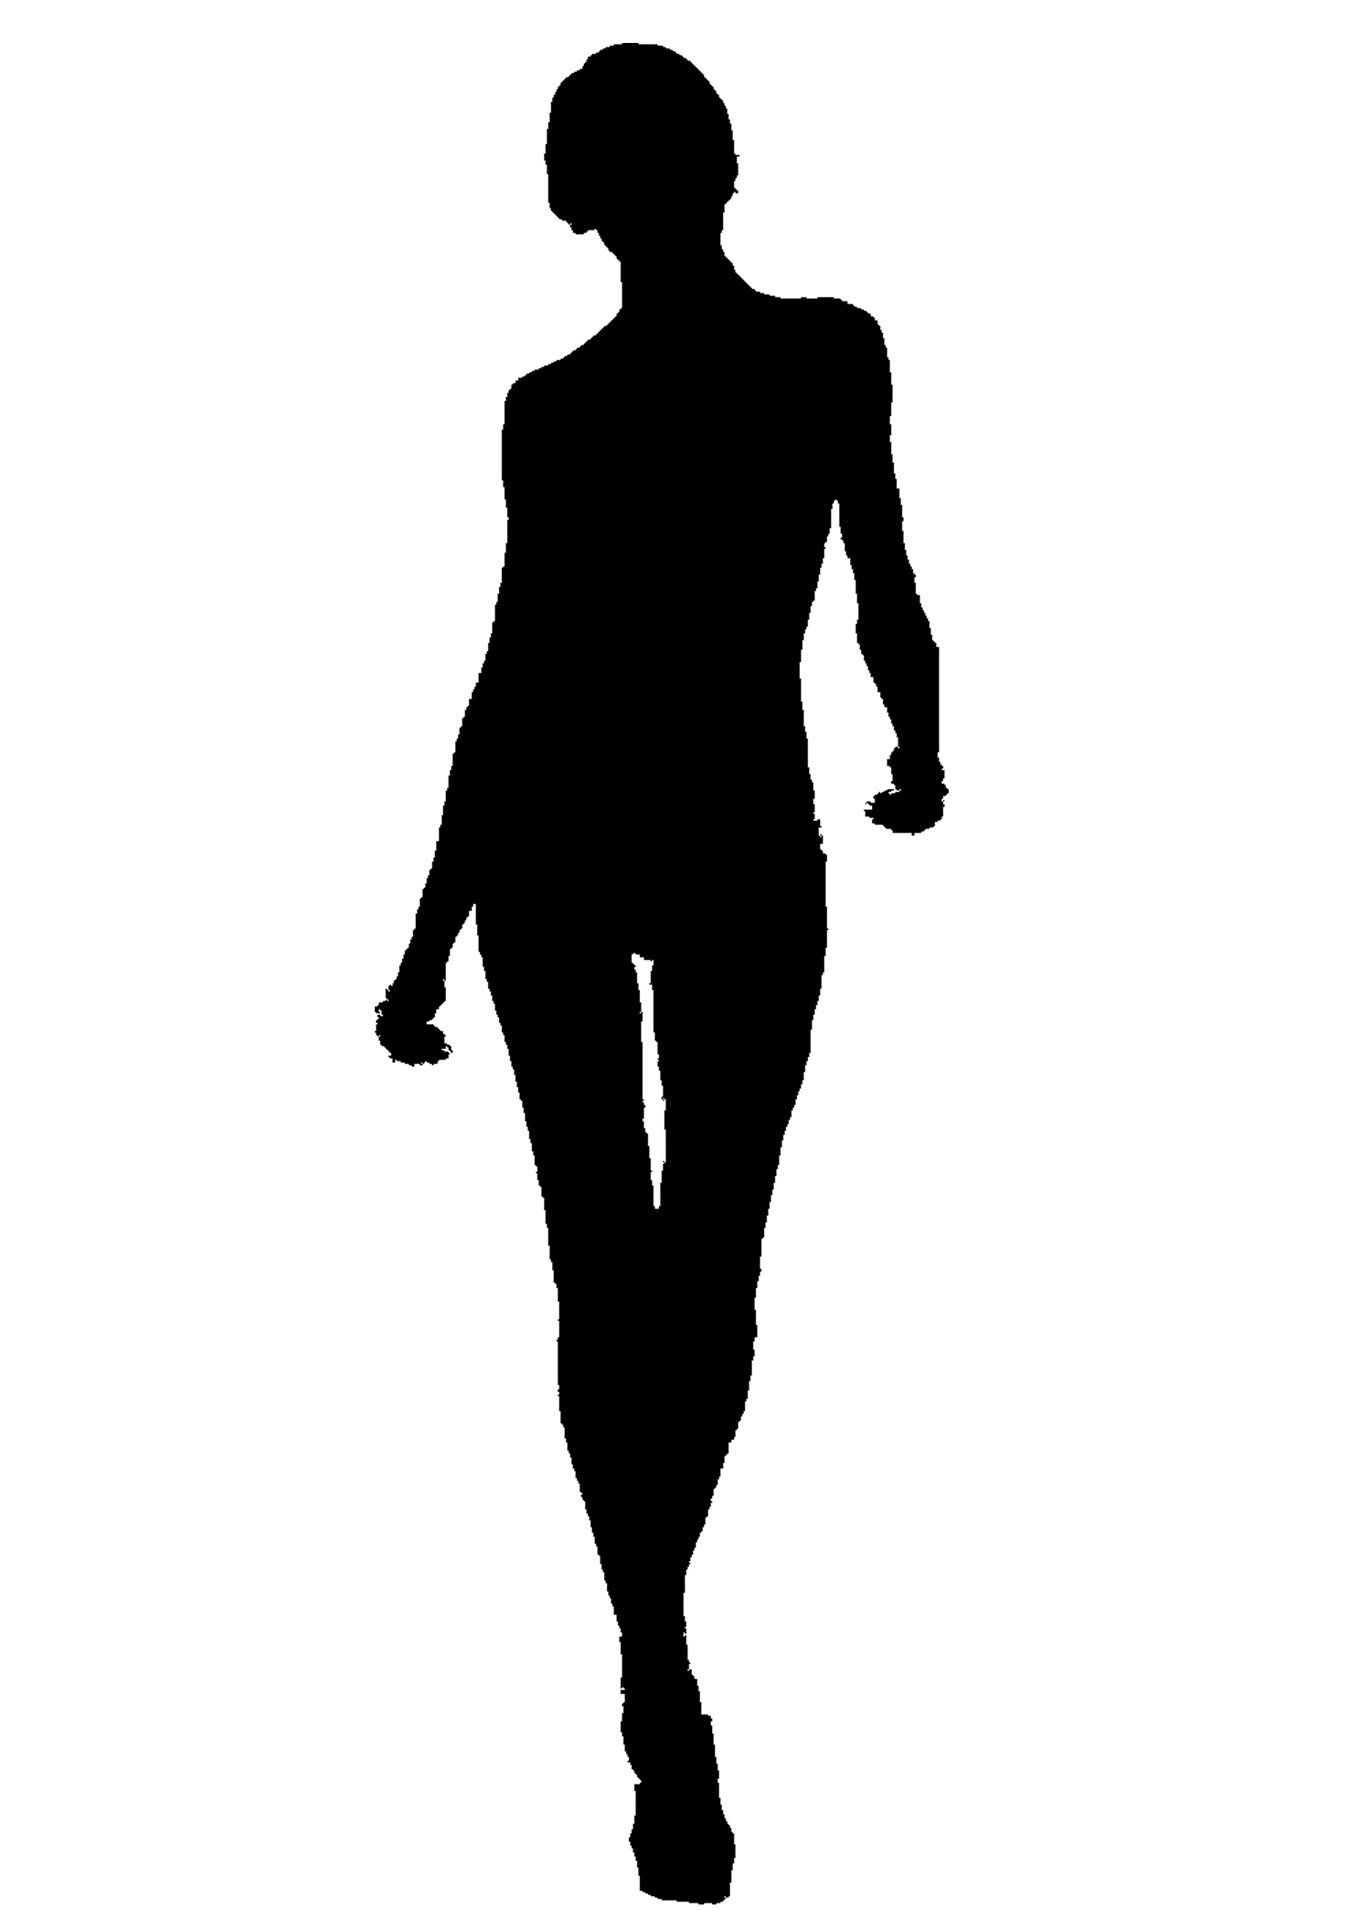 Silhouette Woman Walking Away